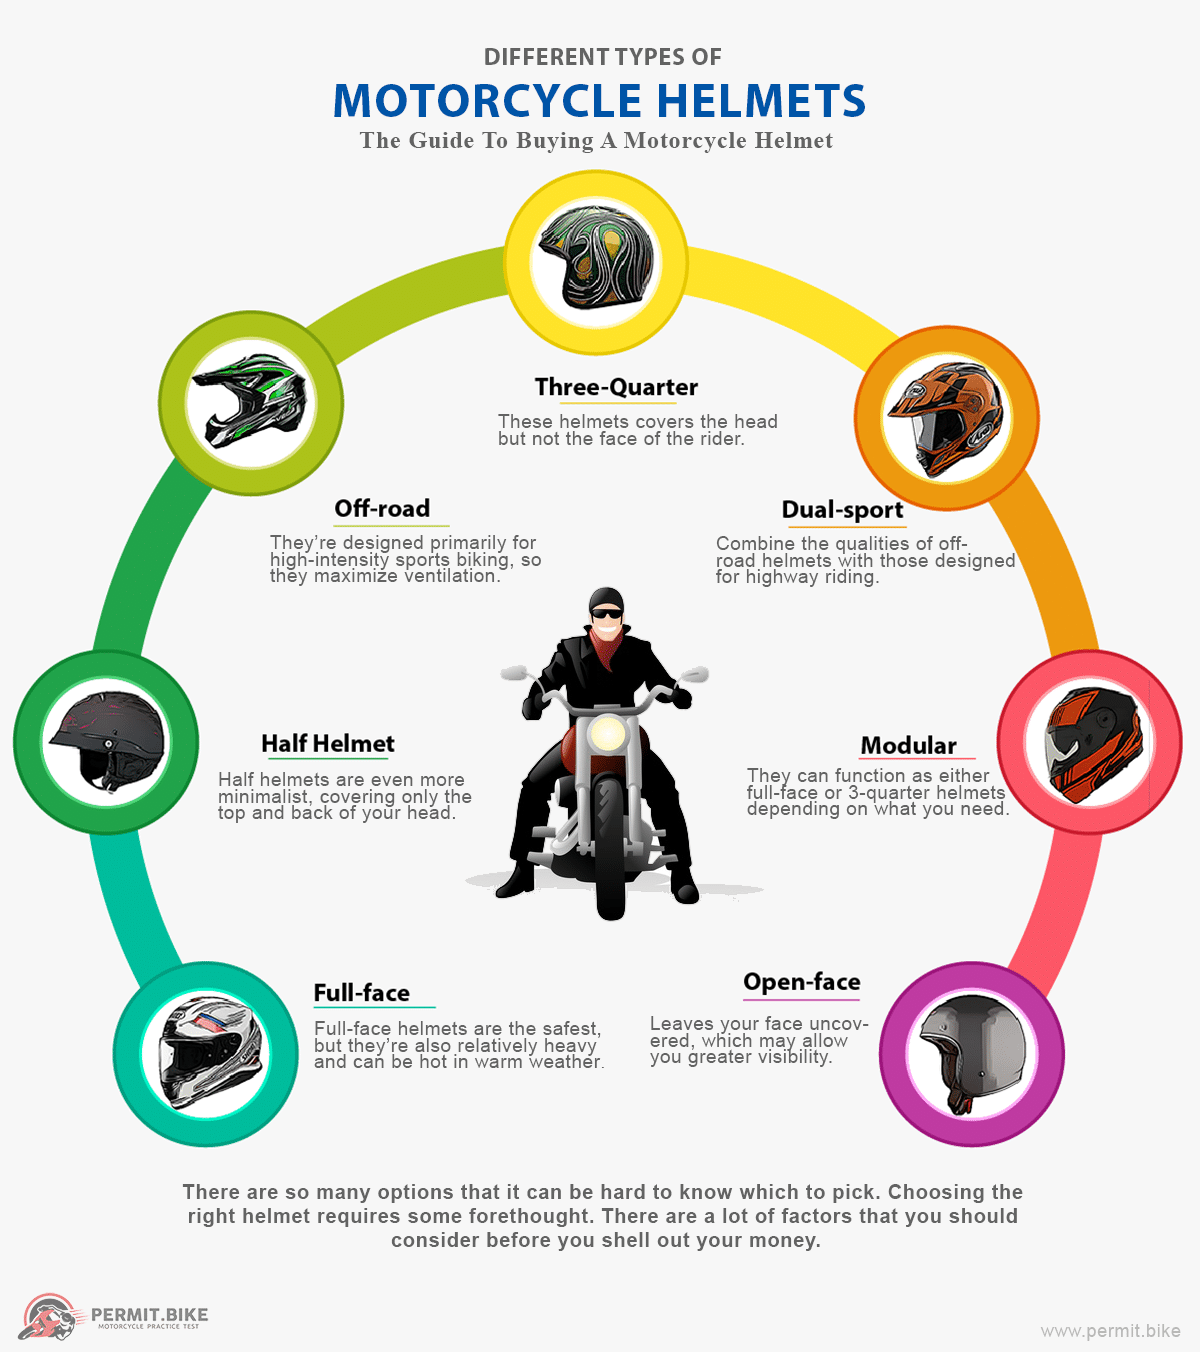 Types of Motorcycle Helmets Infographic